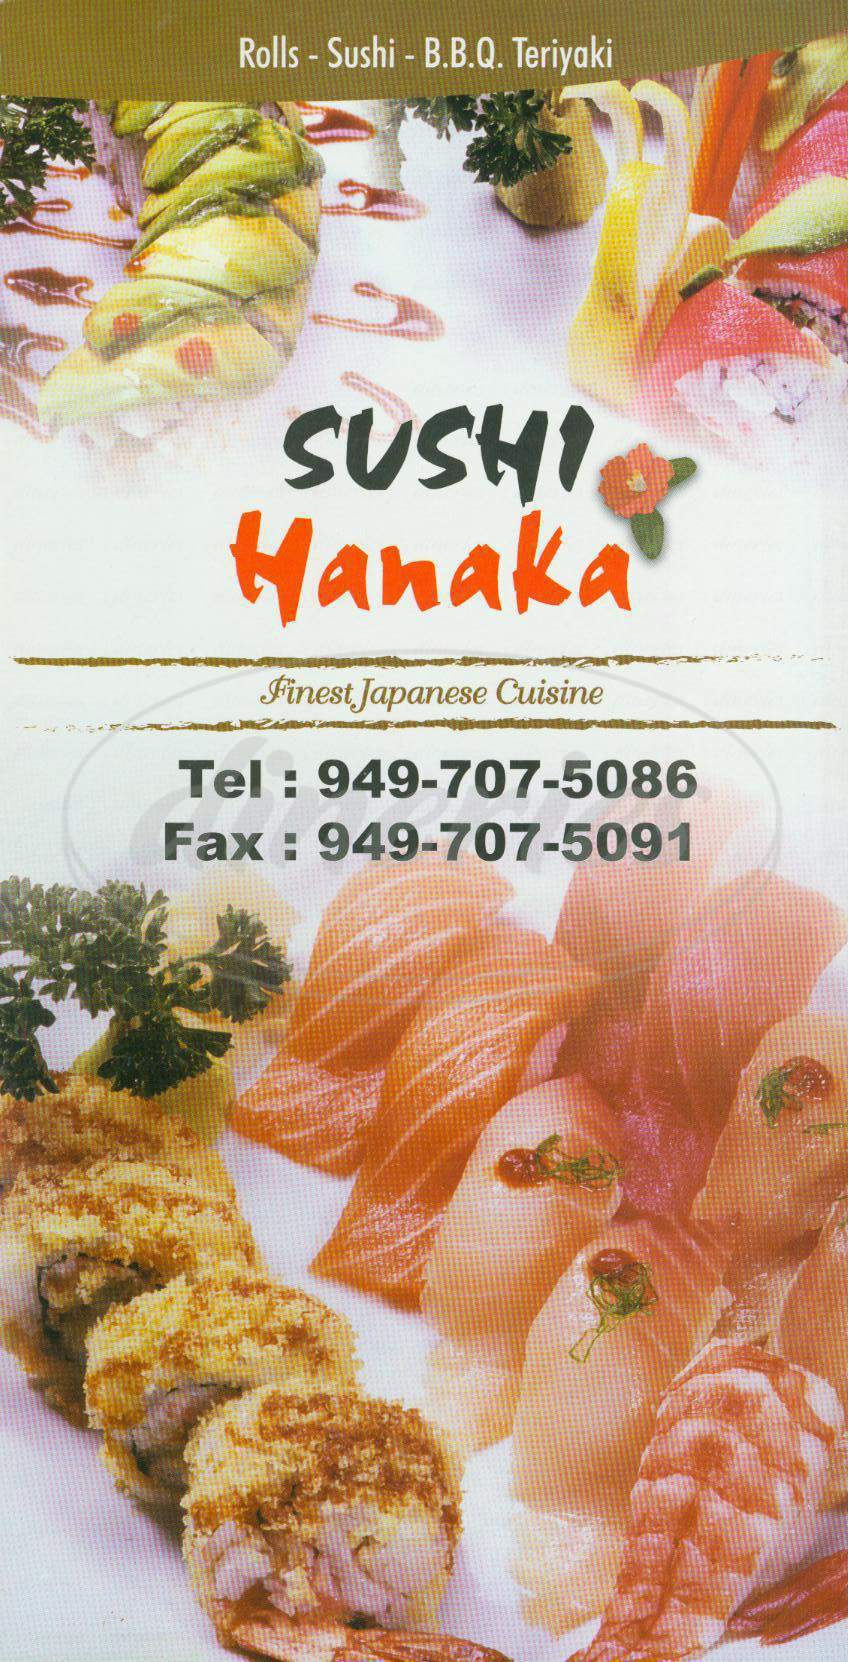 menu for Sushi Hanaka